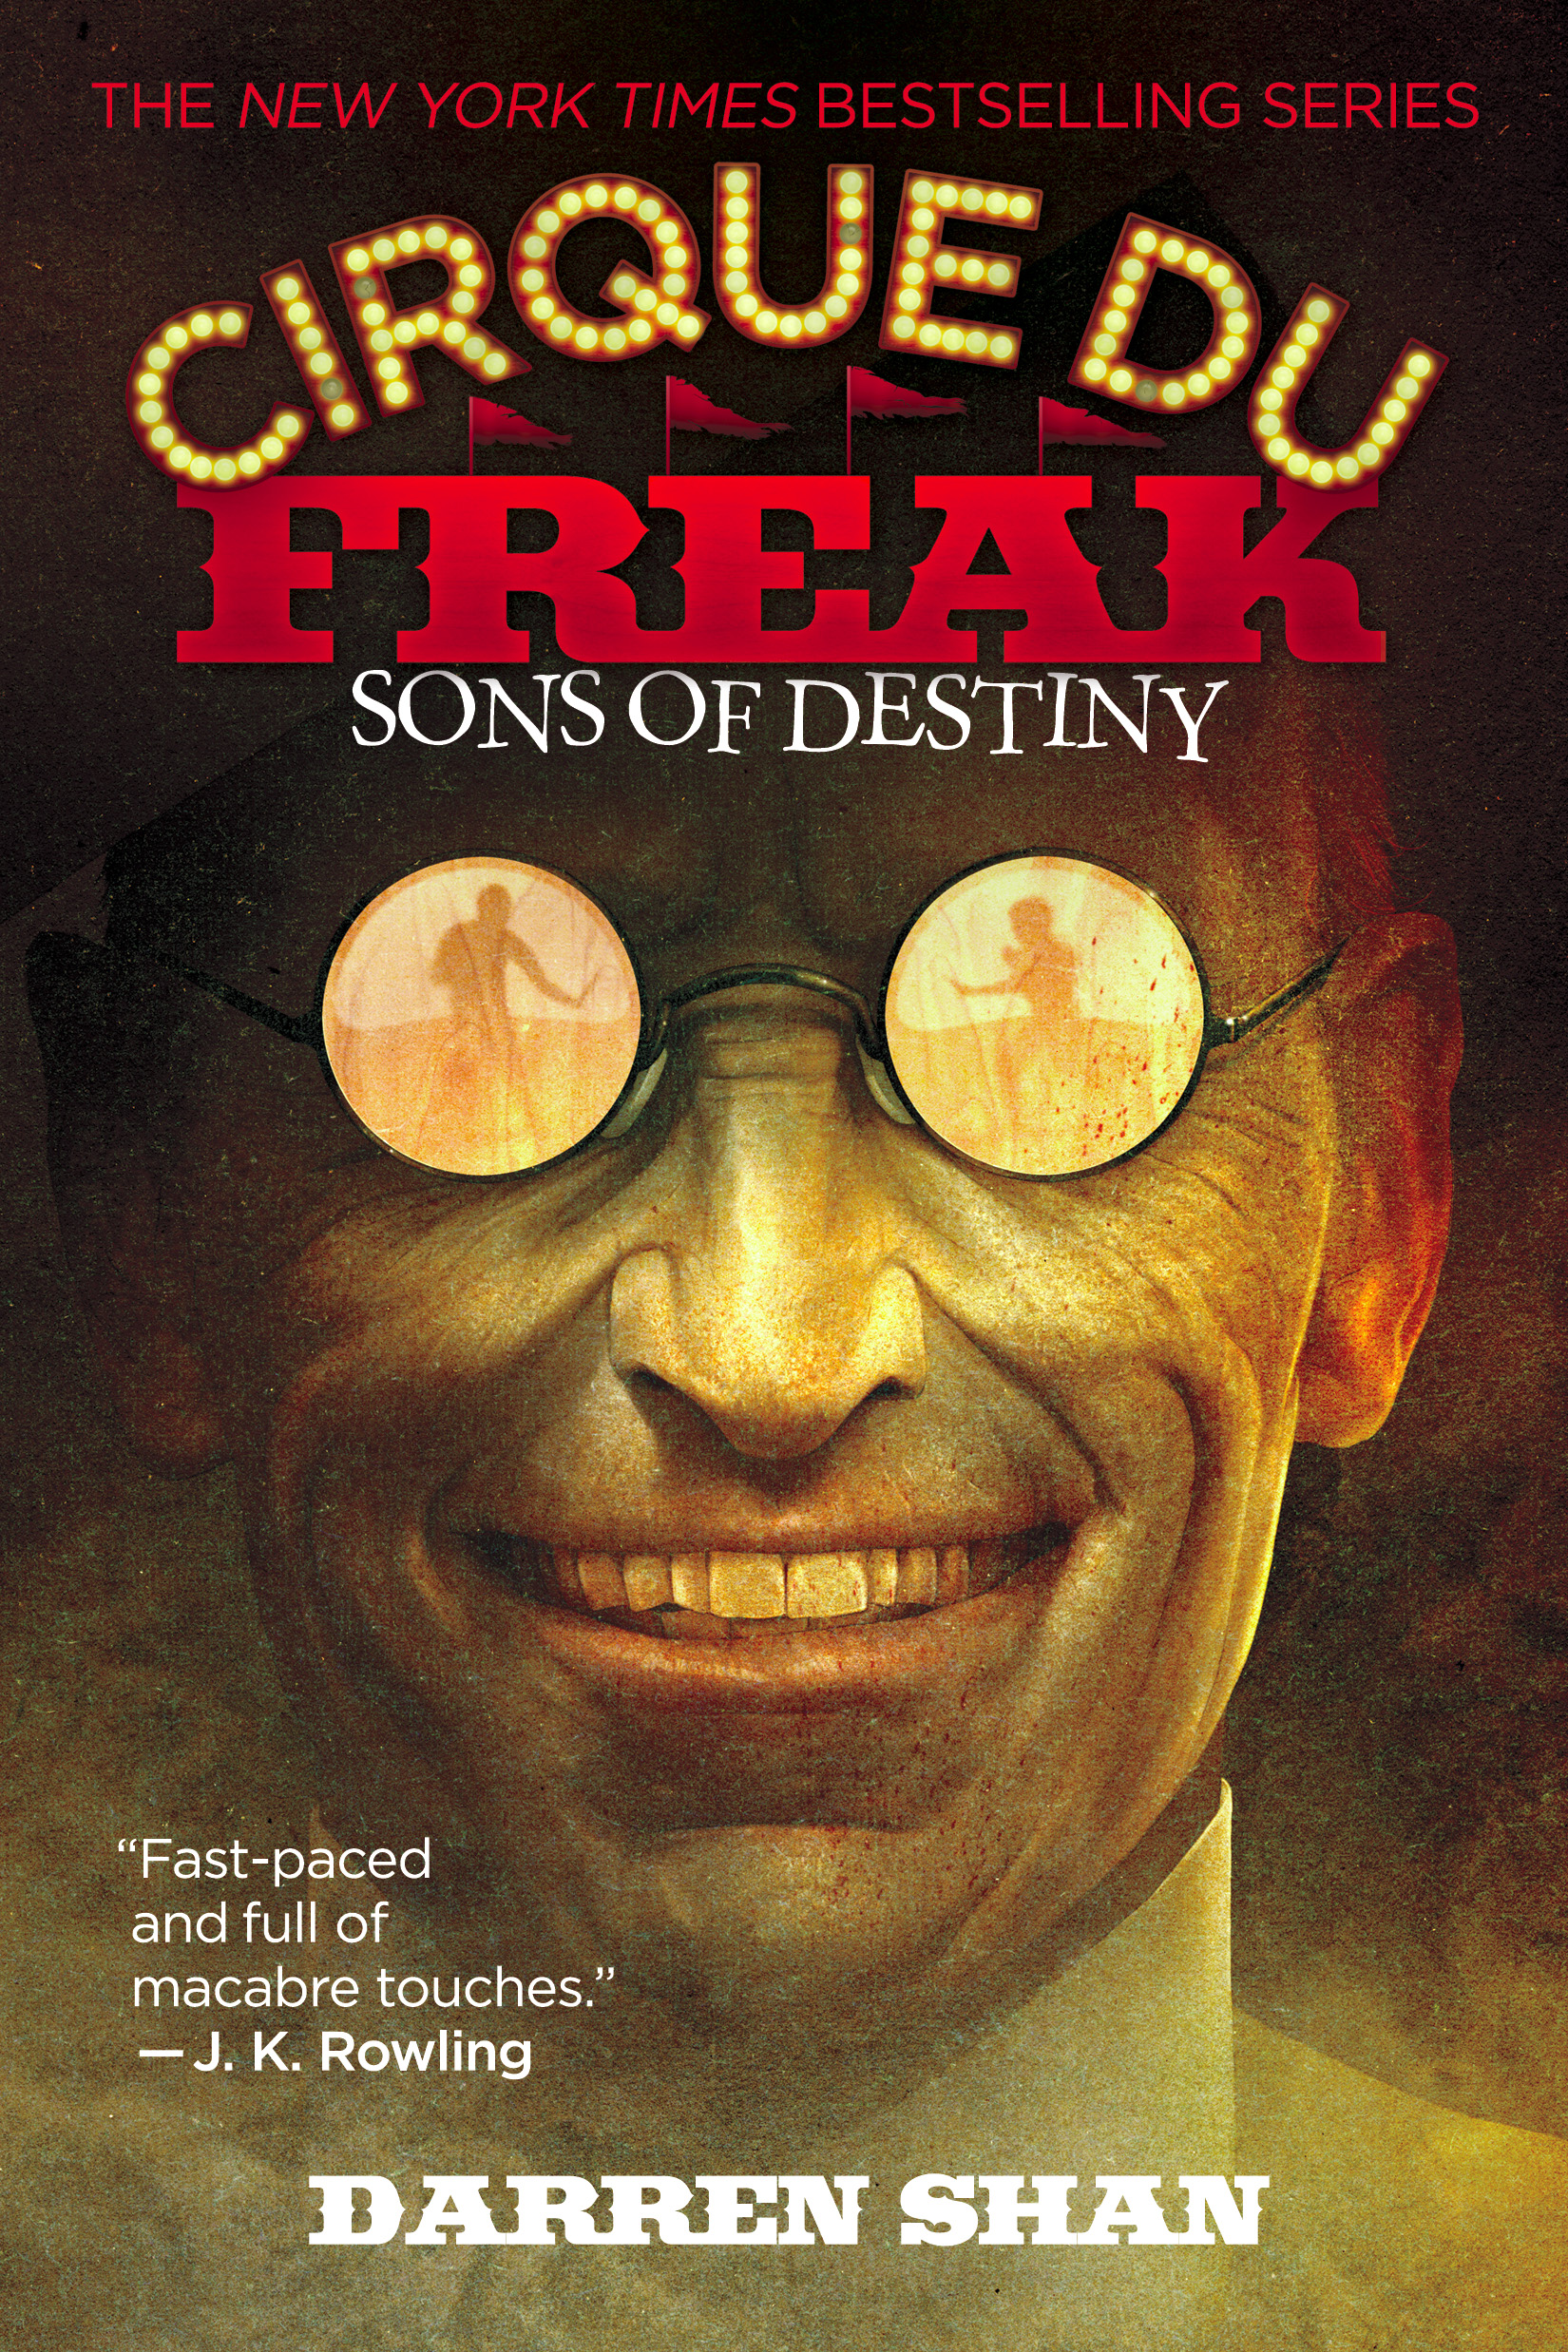 Cirque Du Freak: Sons of Destiny by Darren Shan Designed by Ben Mautner for Little, Brown Logo & Identity by Ben Mautner. Illustrated by Sam Weber.